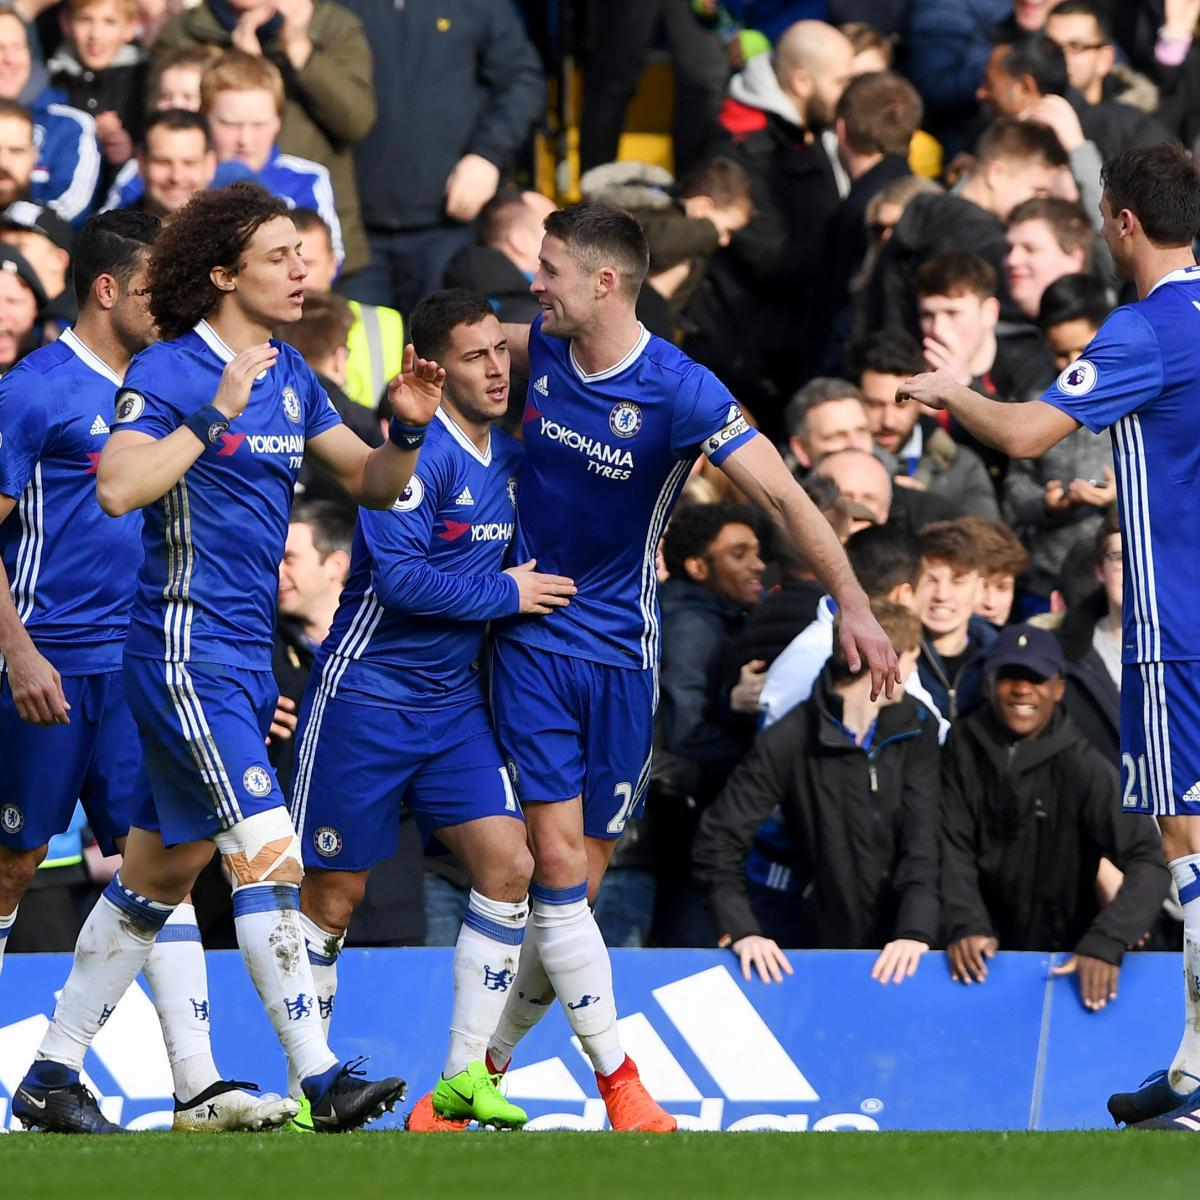 Chelsea Vs Tottenham Score Reaction From 2016 Premier: Chelsea Vs. Arsenal: Score And Reaction From 2017 Premier